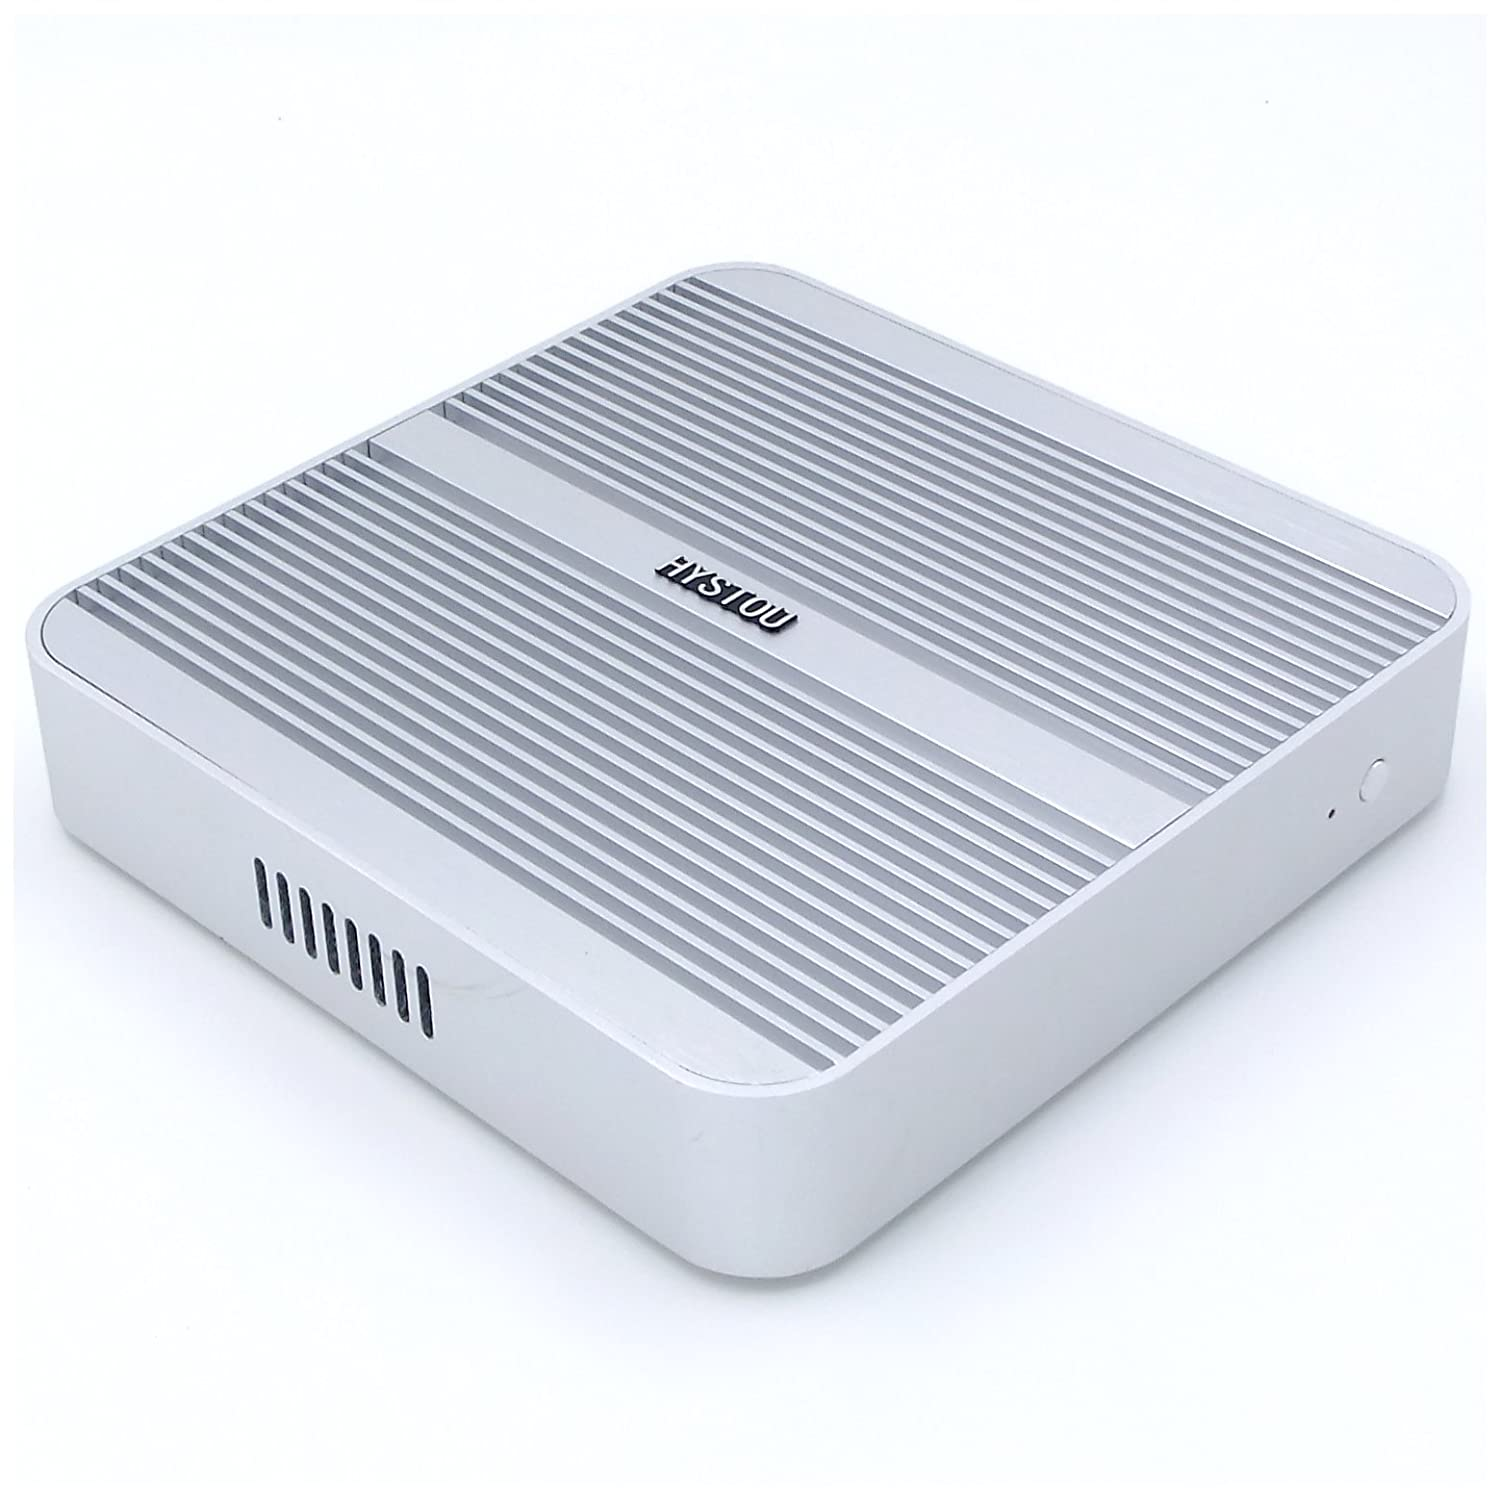 cf17e90371e8 Amazon | HYSTOU FMP03 Intel Core I3-6100U, Gaming Mini Pc, Mini Desktop  Computer, Finless Mini Box PC, Power Interuption Recovery, Support Dual ...